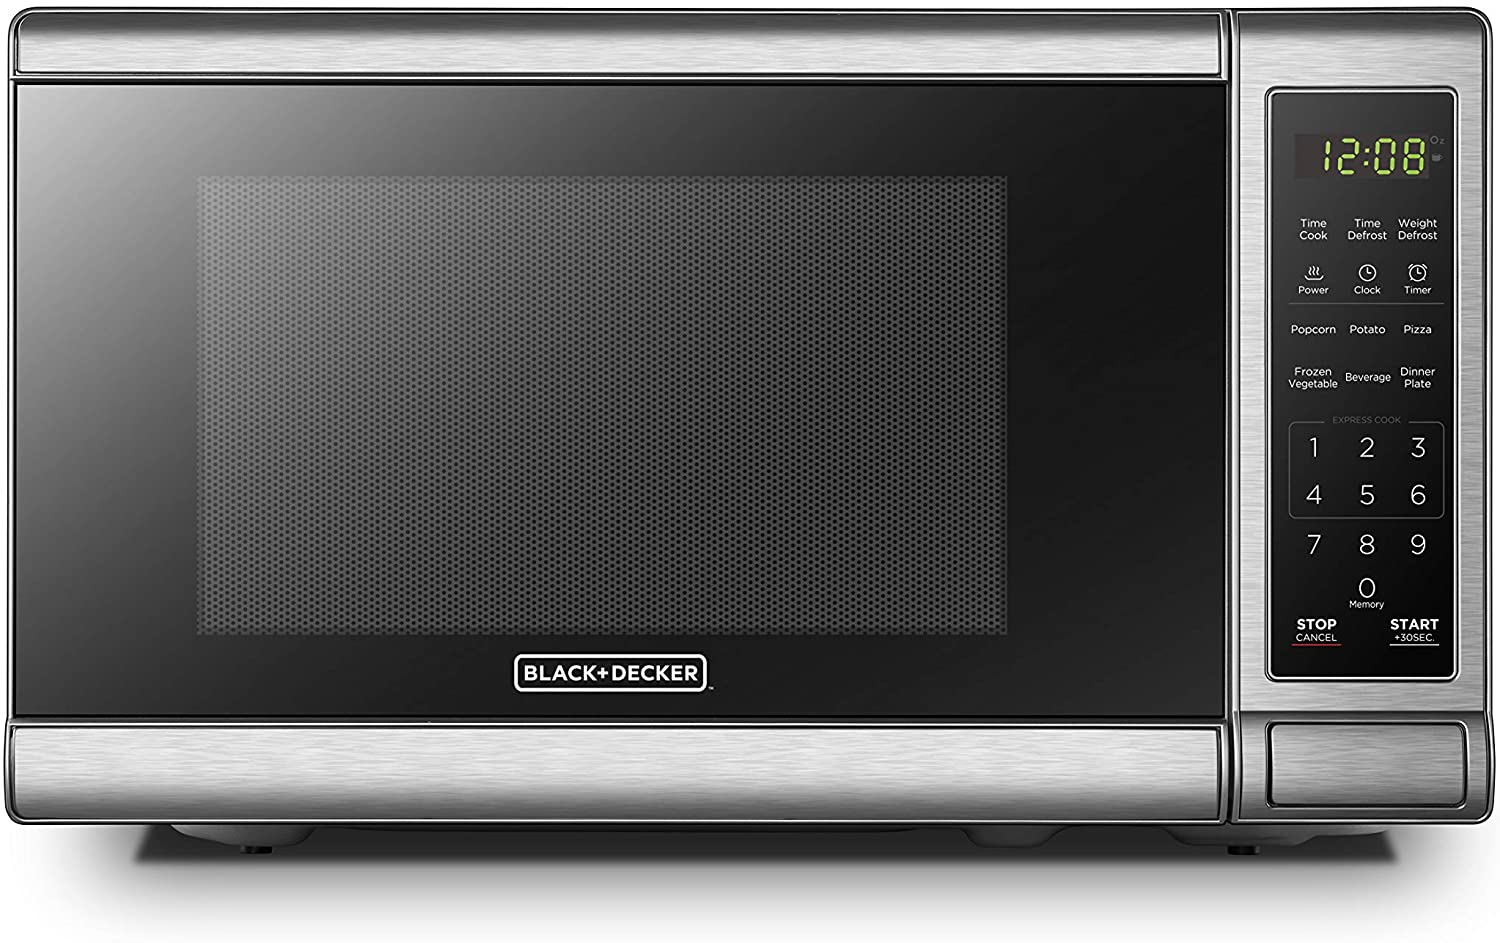 Best Microwave For 12 inch Deep Cabinet